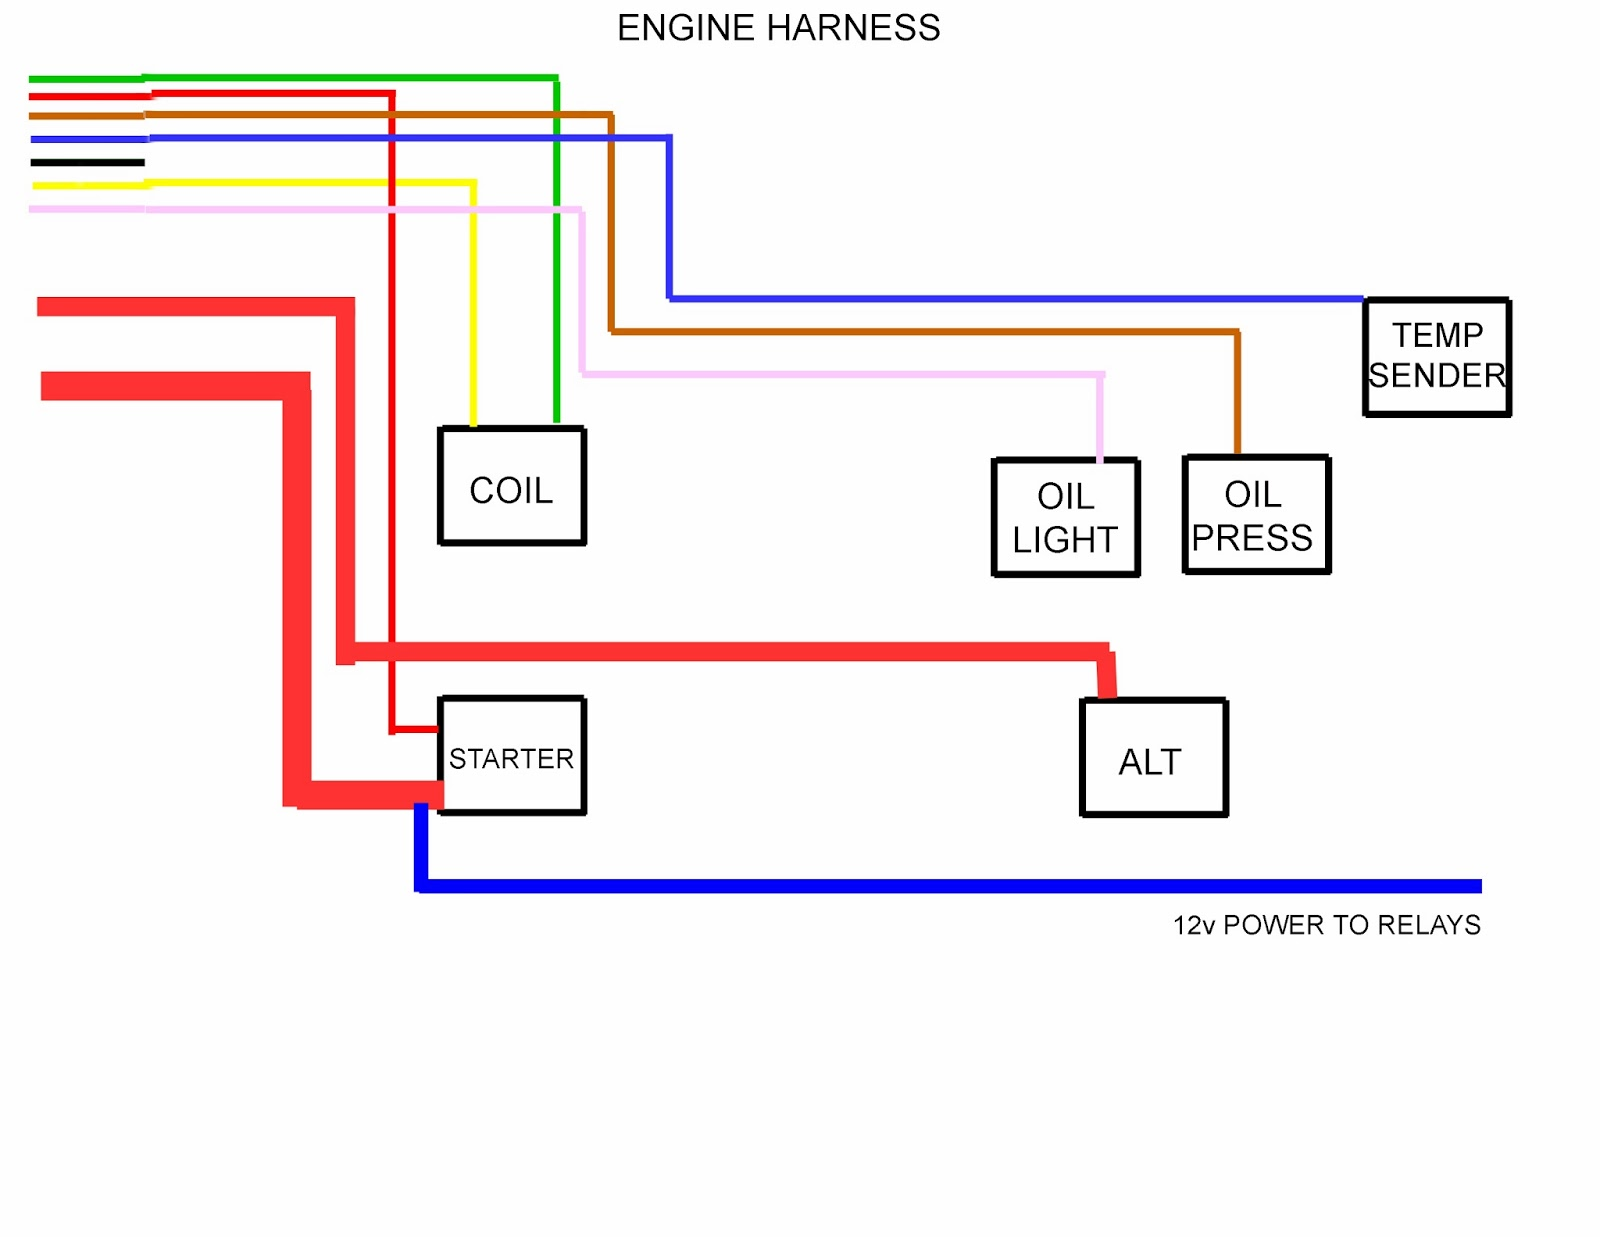 hight resolution of wrg 9599 porsche 924 fuse boxbattery and safety switch harness porsche 924